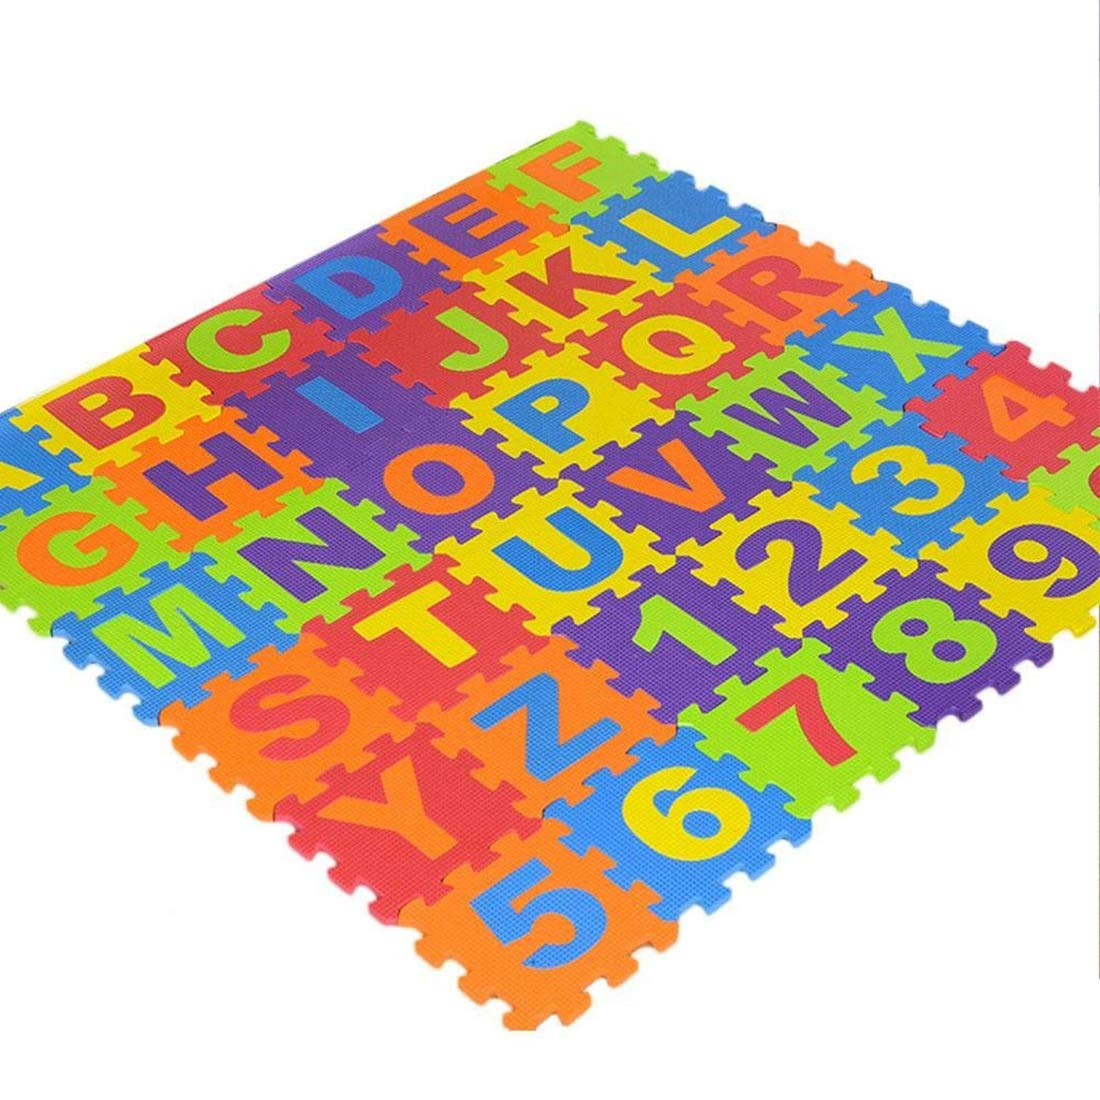 Trimming Shop 36 Pcs Soft Eva Foam Safe Play Mat Learning Alphabet Number Jigsaw Puzzle for Baby Children Kids UK